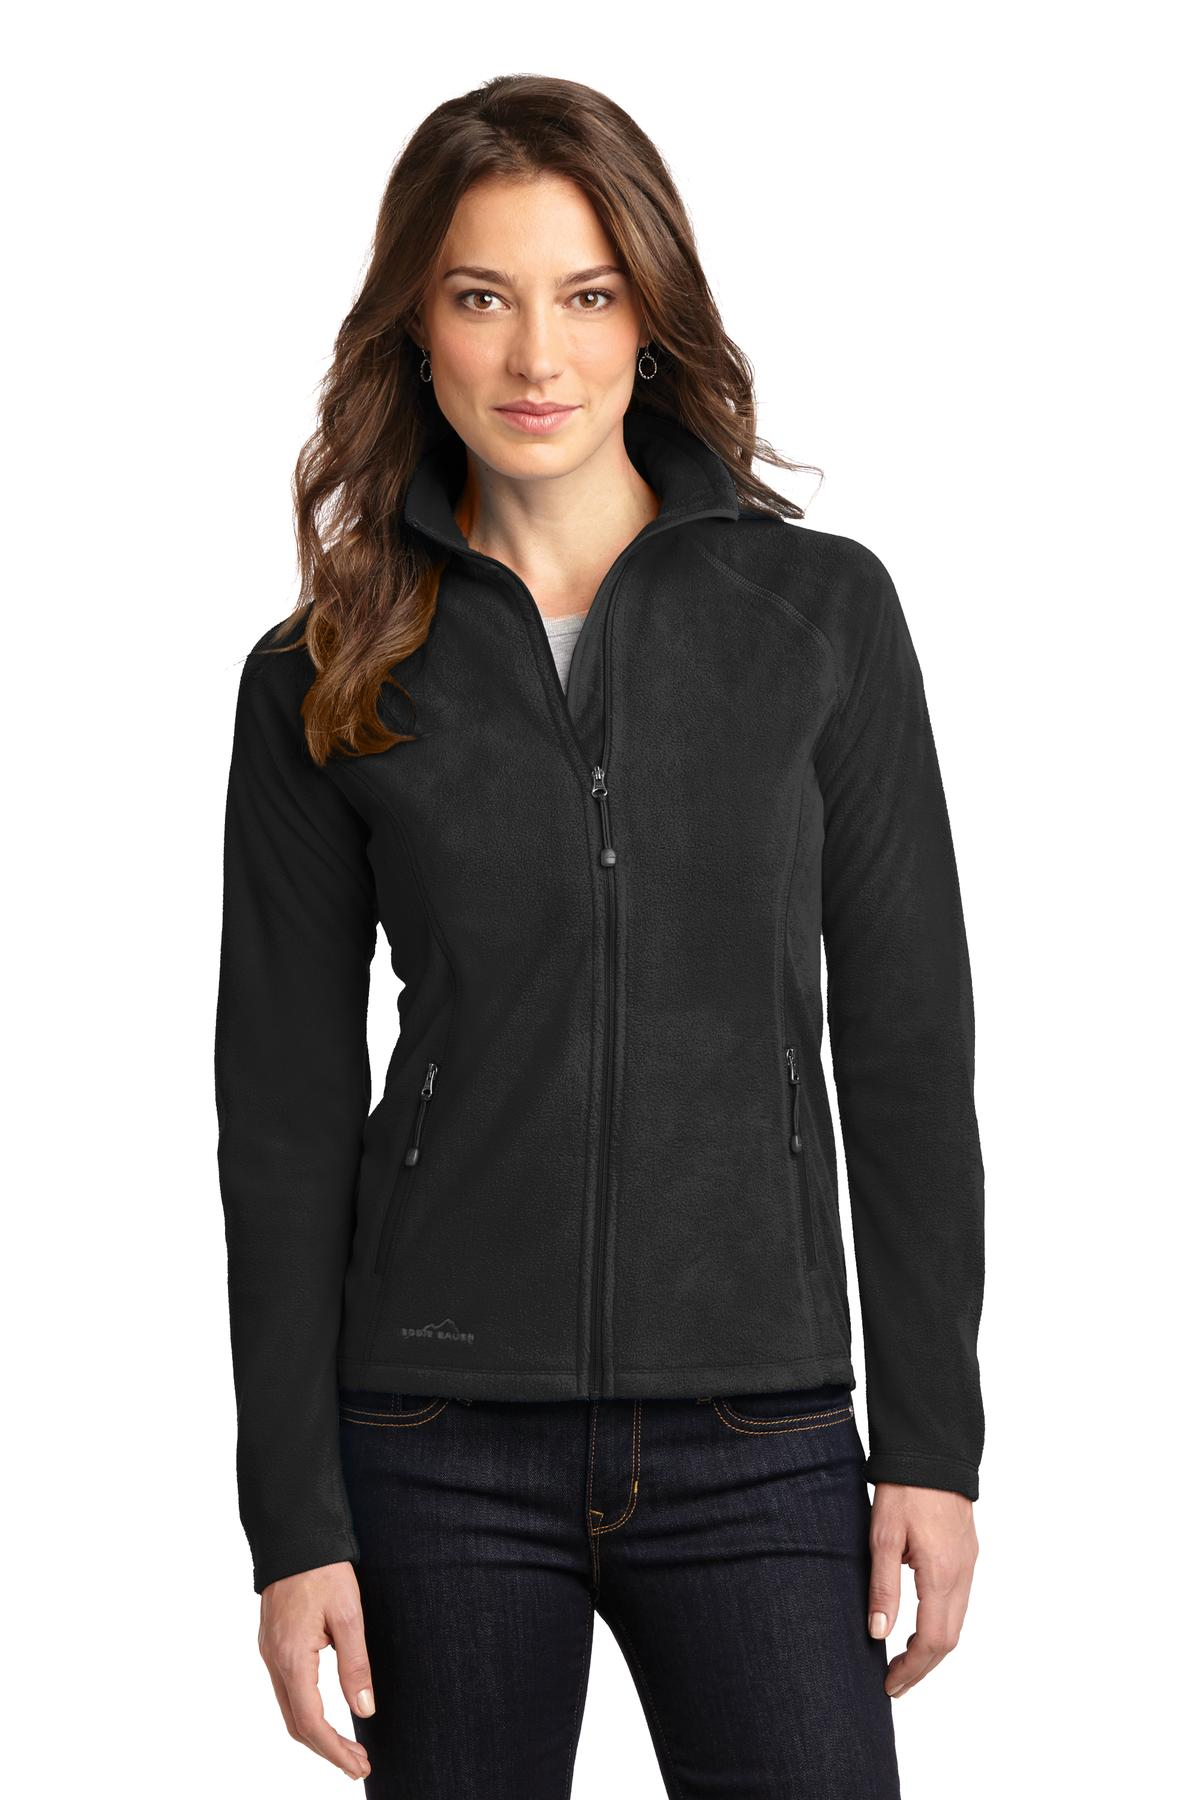 Eddie Bauer ®  Ladies Full-Zip Microfleece Jacket. EB225 - Black